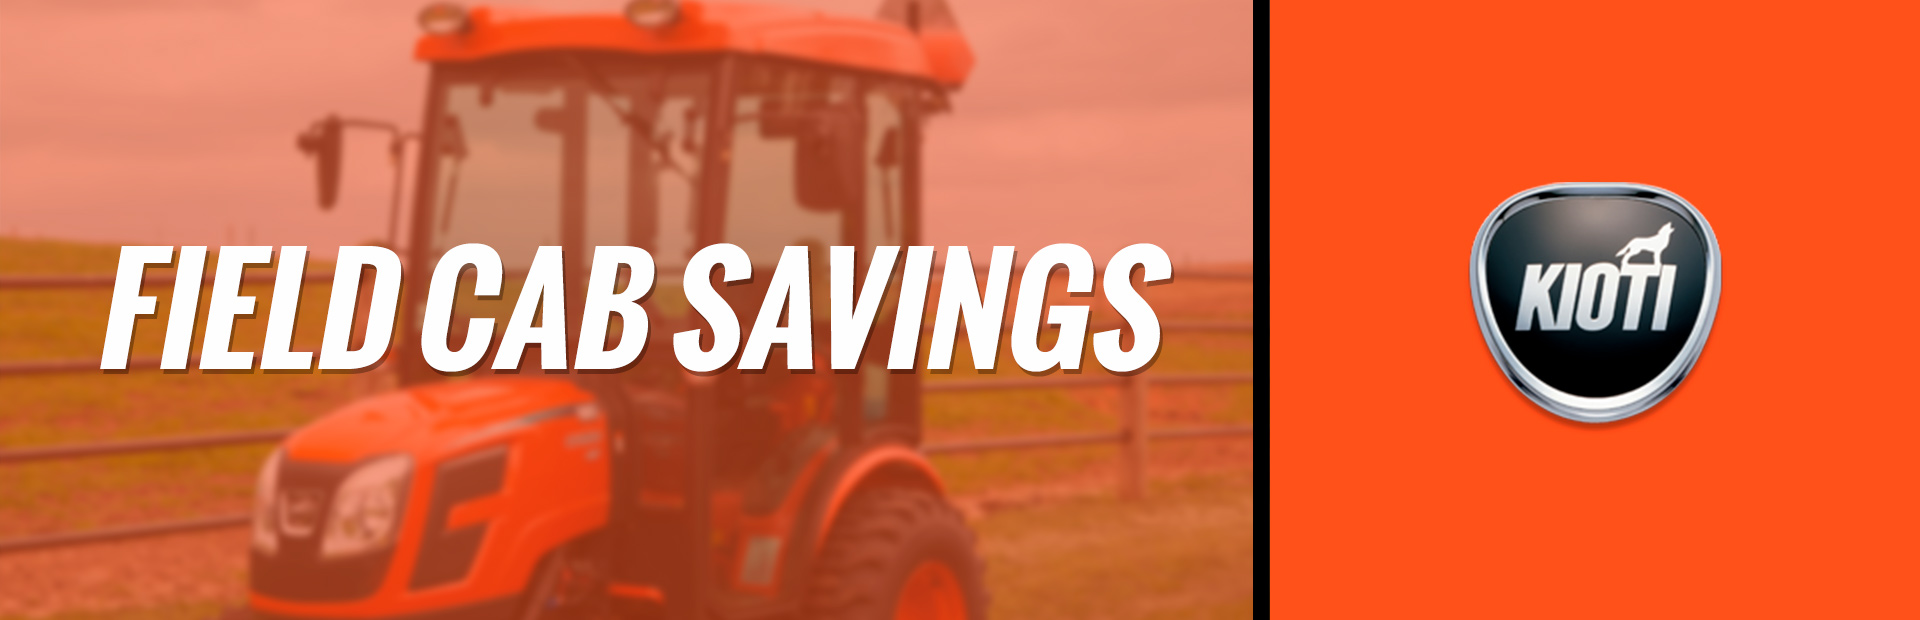 KIOTI: Field Cab Savings